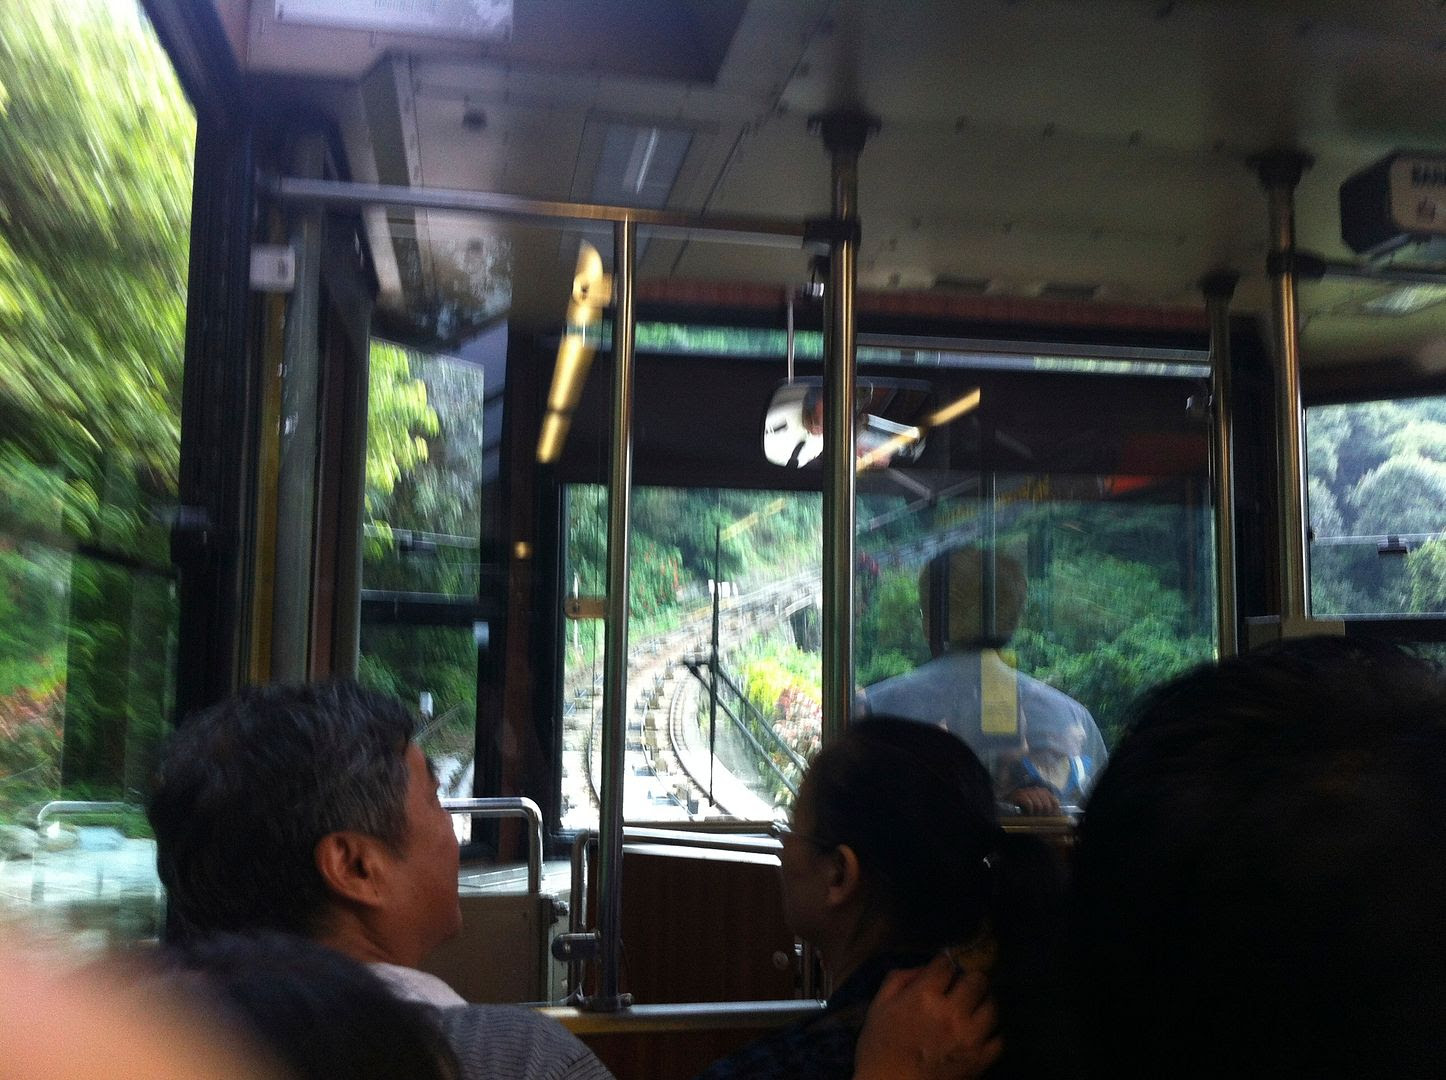 Victoria Peak Tram in Hong Kong photo 2013-09-281645_zpscecc03d3.jpg